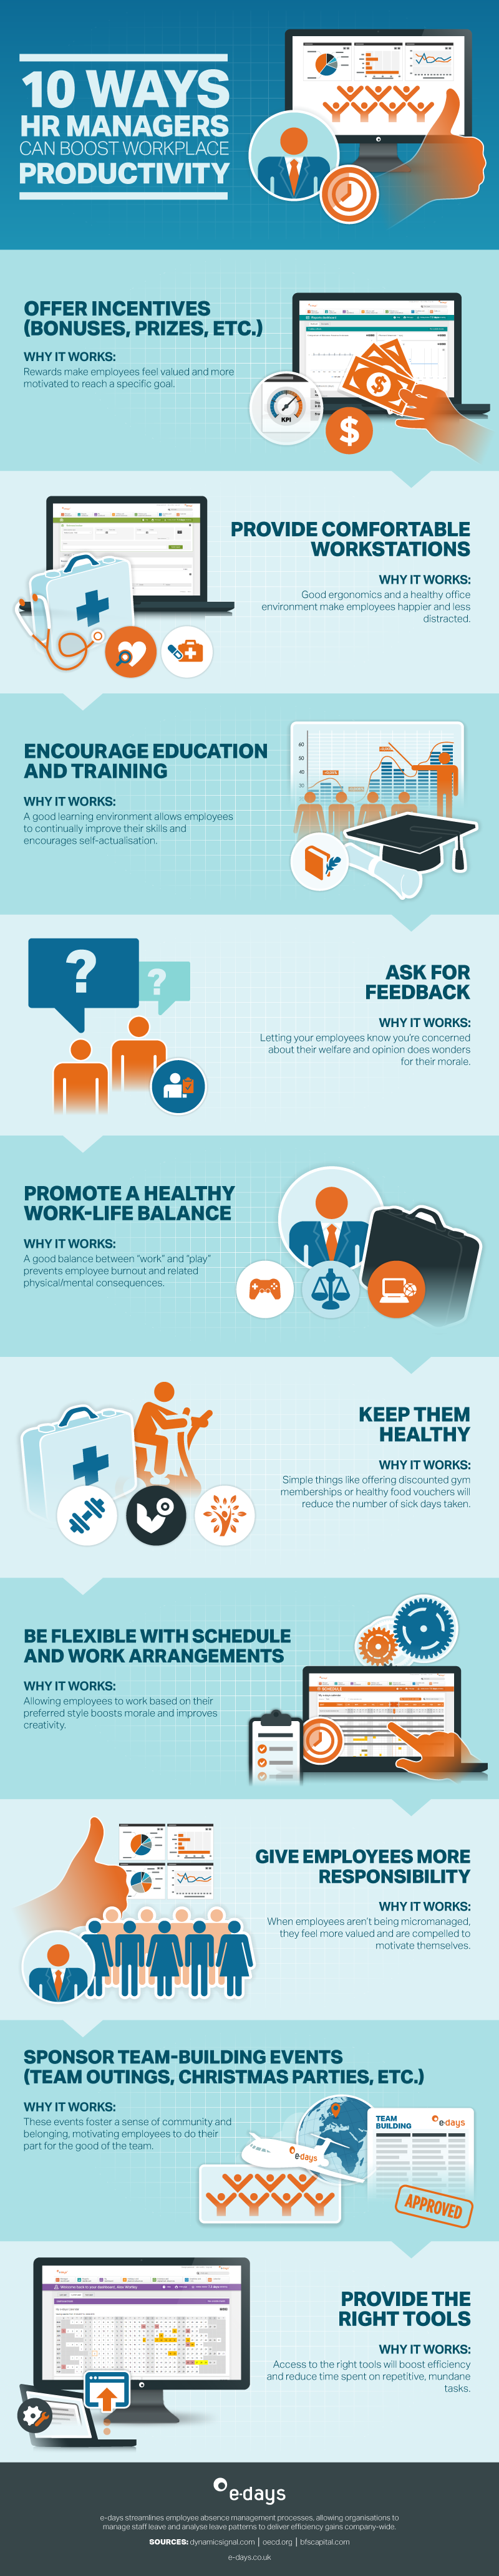 [Infographic] 10 Ways HR Managers Can Boost Workplace Productivity